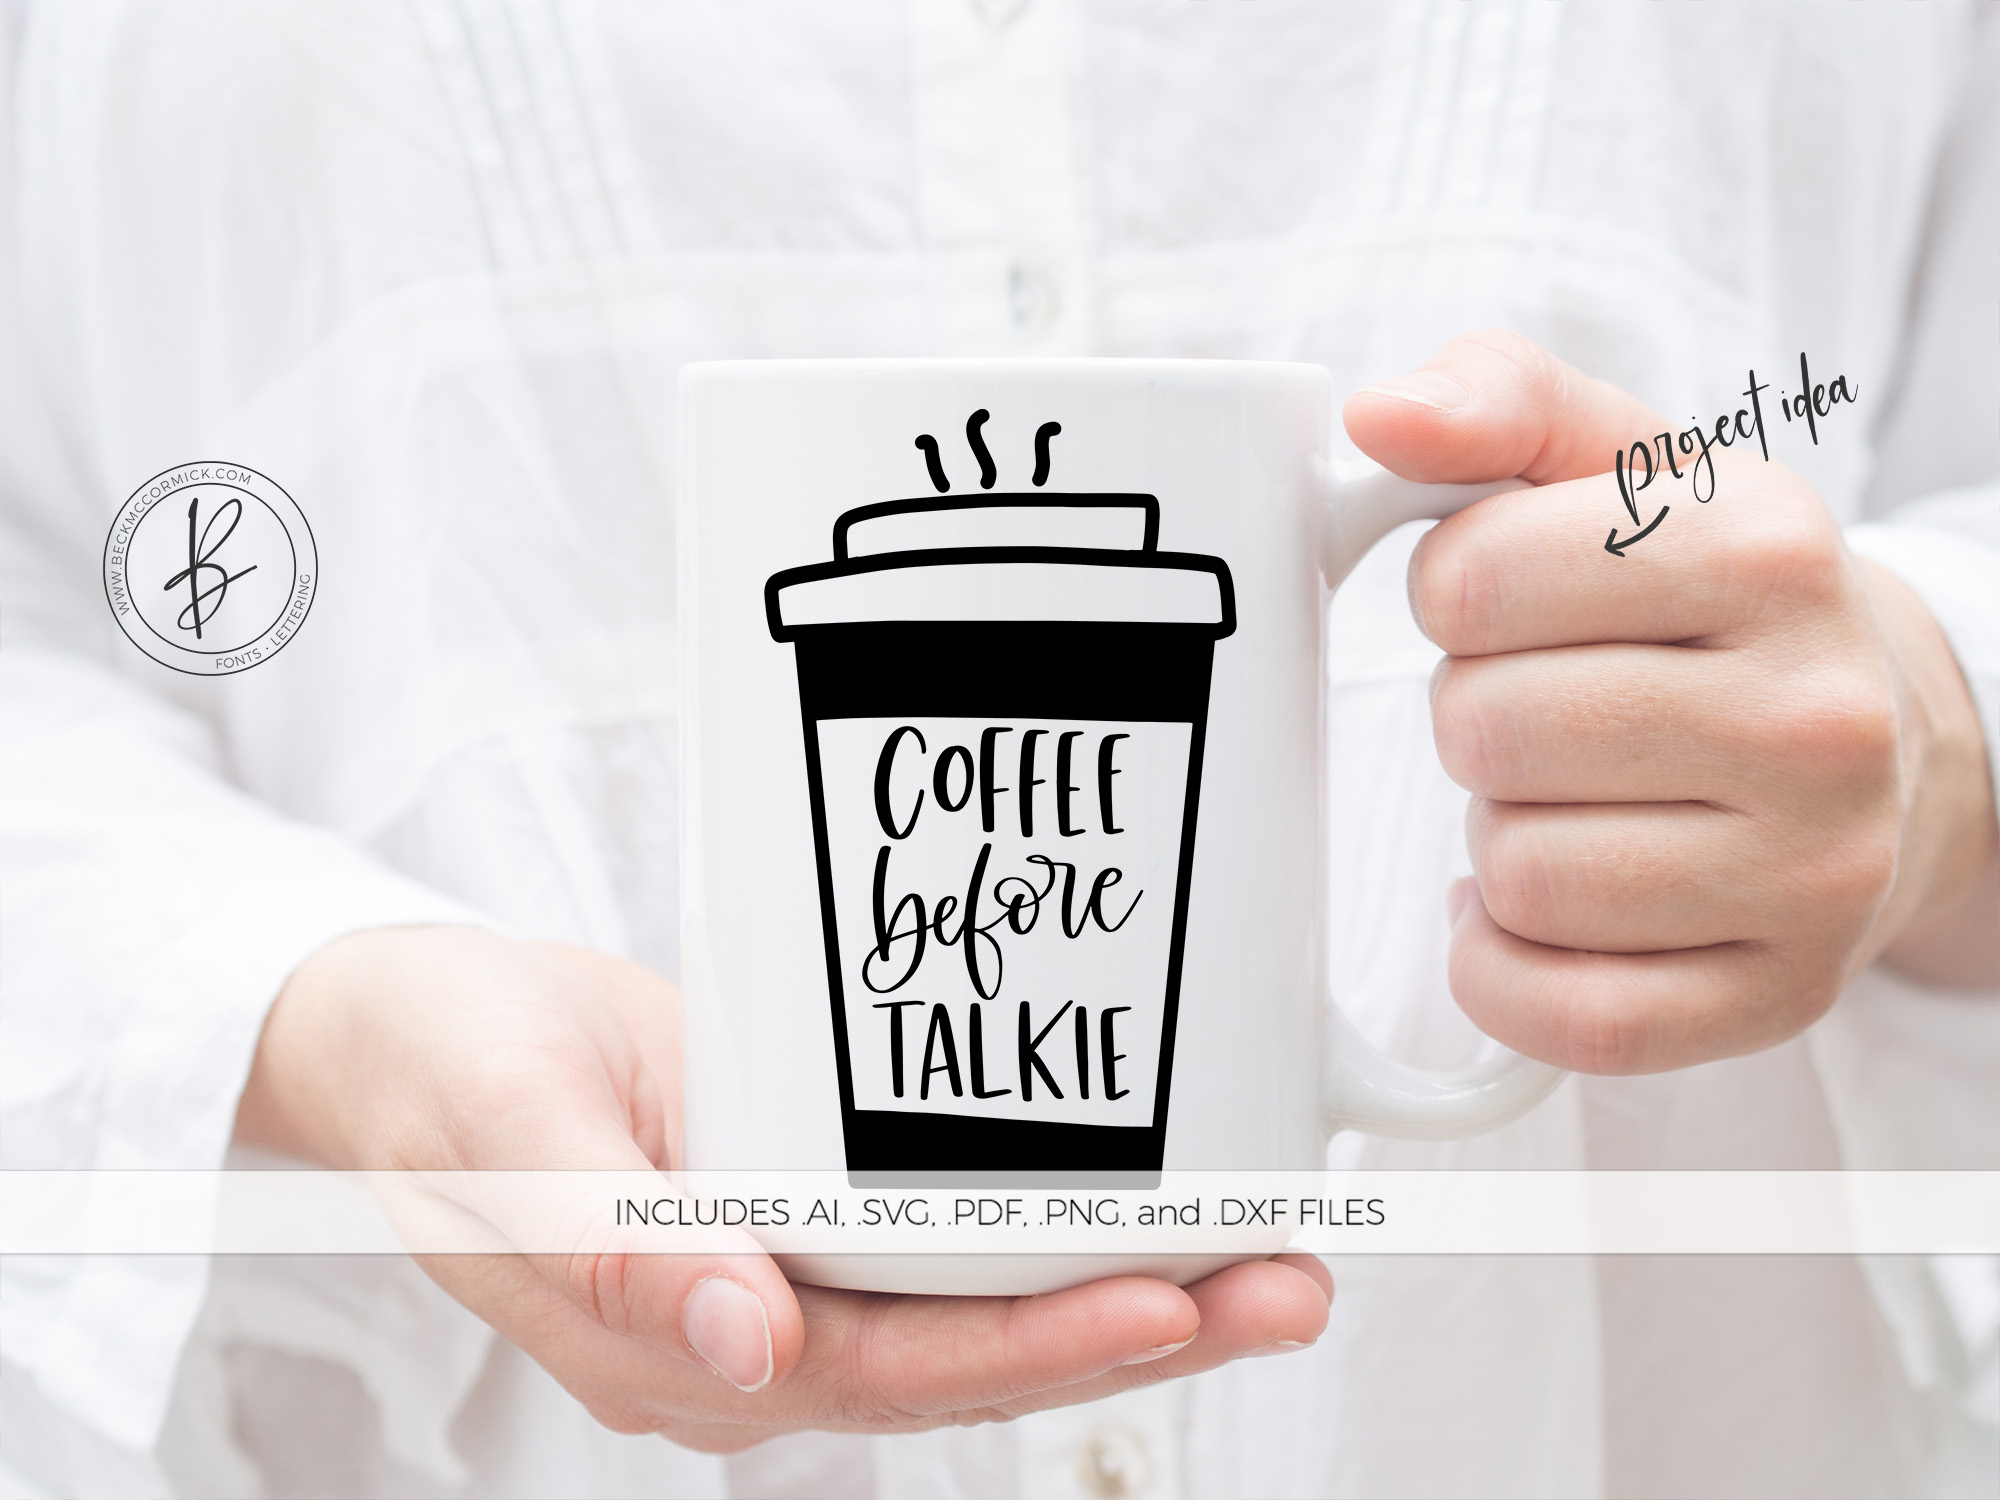 Download Free Coffee Before Talkie Graphic By Beckmccormick Creative Fabrica for Cricut Explore, Silhouette and other cutting machines.